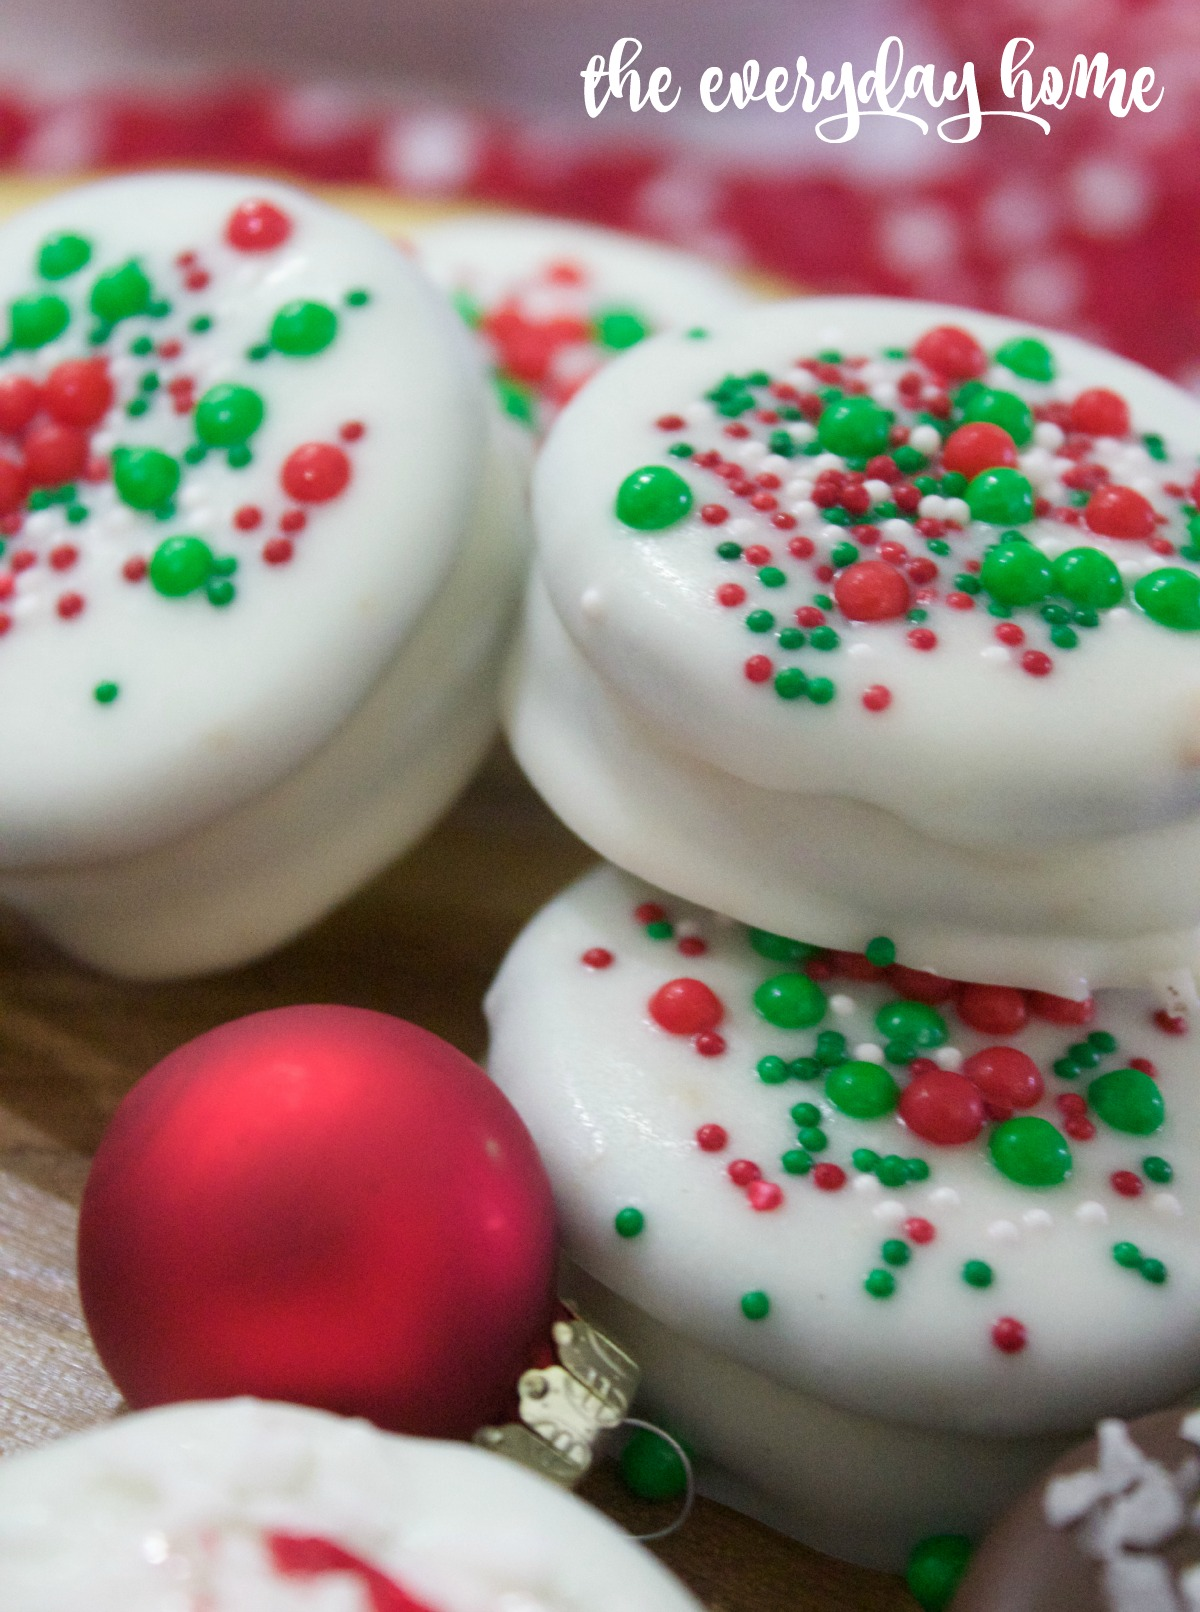 White Chocolate Covered Oreos with Sprinkles   2015 Christmas Cookie Exchange   The Everyday Home   www.everydayhomeblog.com